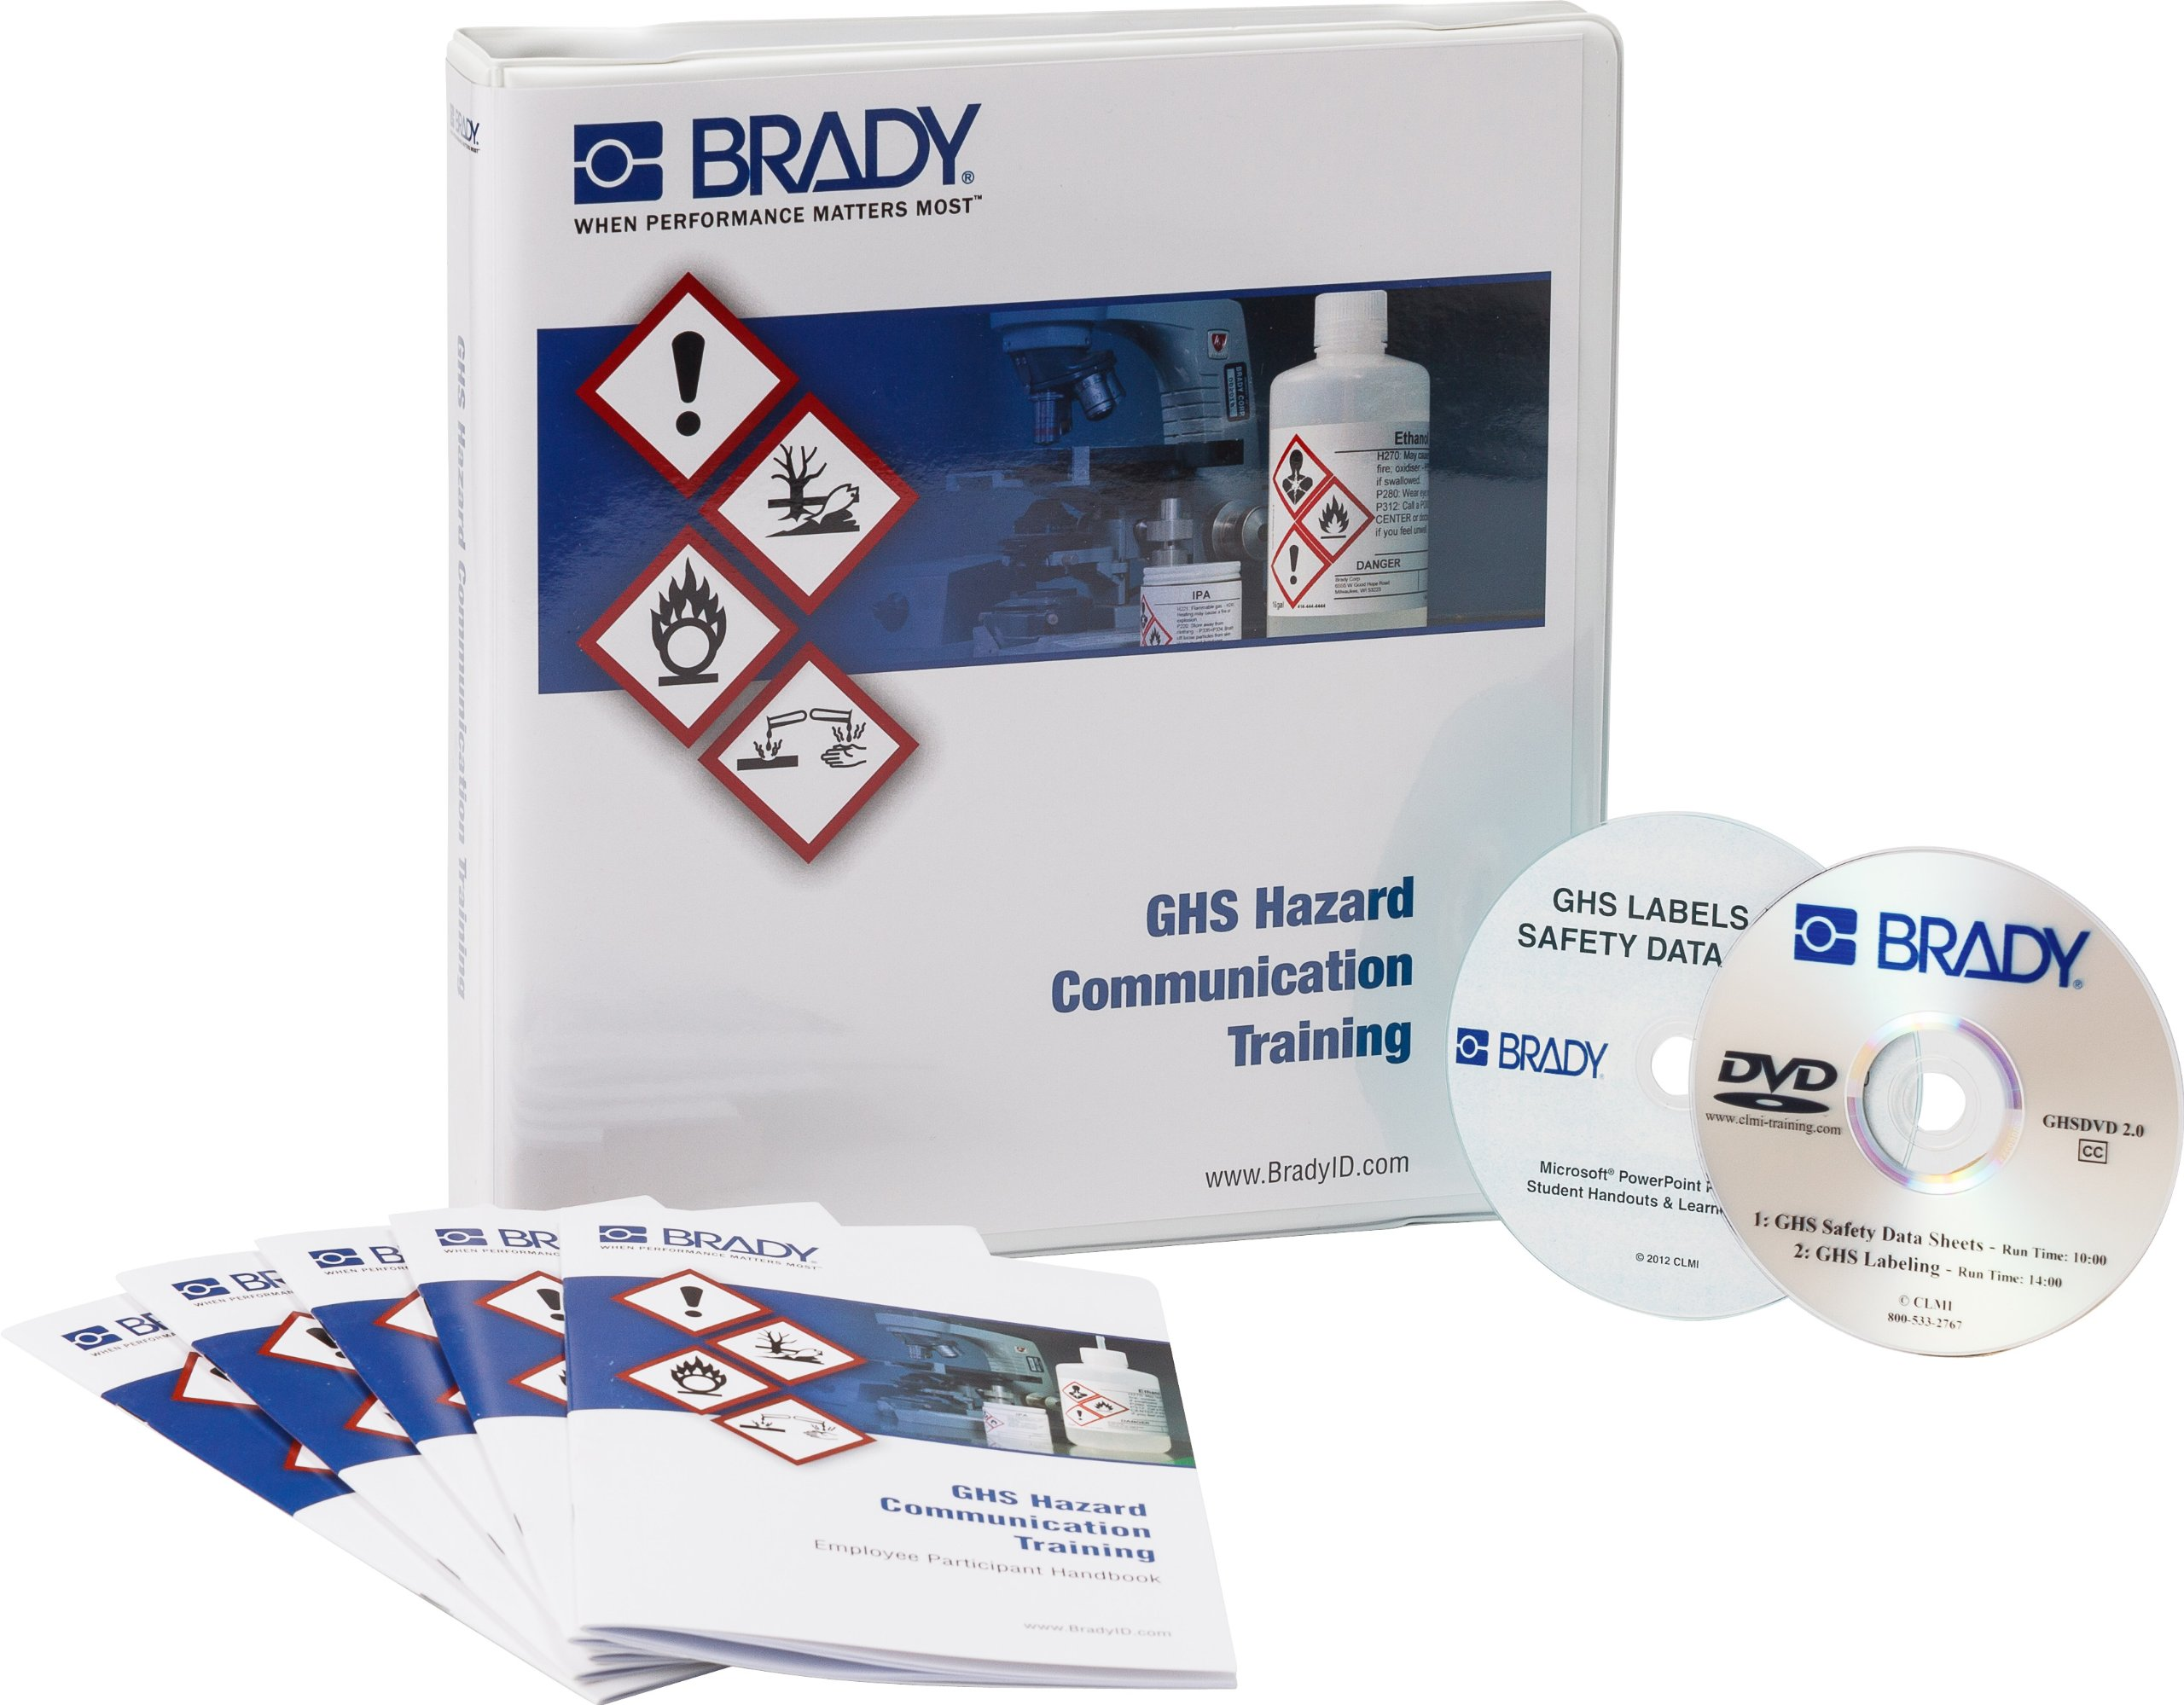 Brady 132428 GHS HazCom Training Program Kit